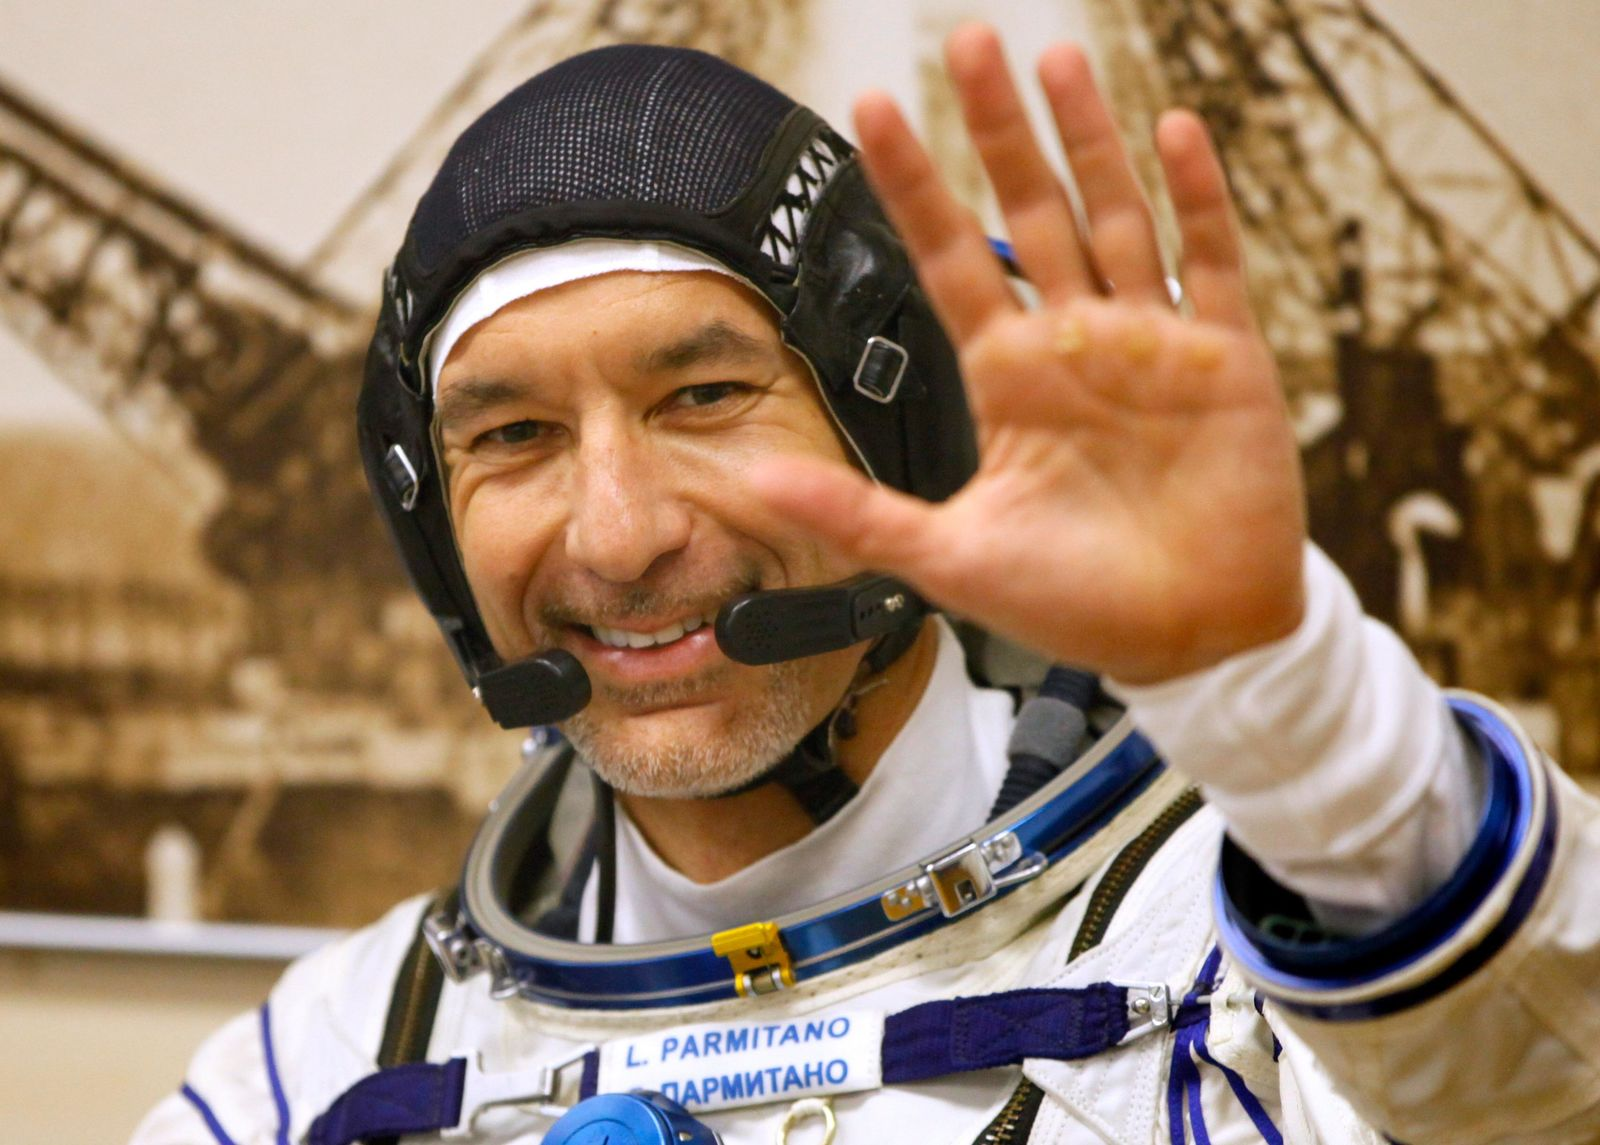 Italian astronaut Luca Parmitano, member of the main crew of the expedition to the International Space Station (ISS), gestures prior the launch of Soyuz MS-13 space ship at the Russian leased Baikonur cosmodrome, Kazakhstan, Saturday, July 20, 2019. (AP Photo/Dmitri Lovetsky)